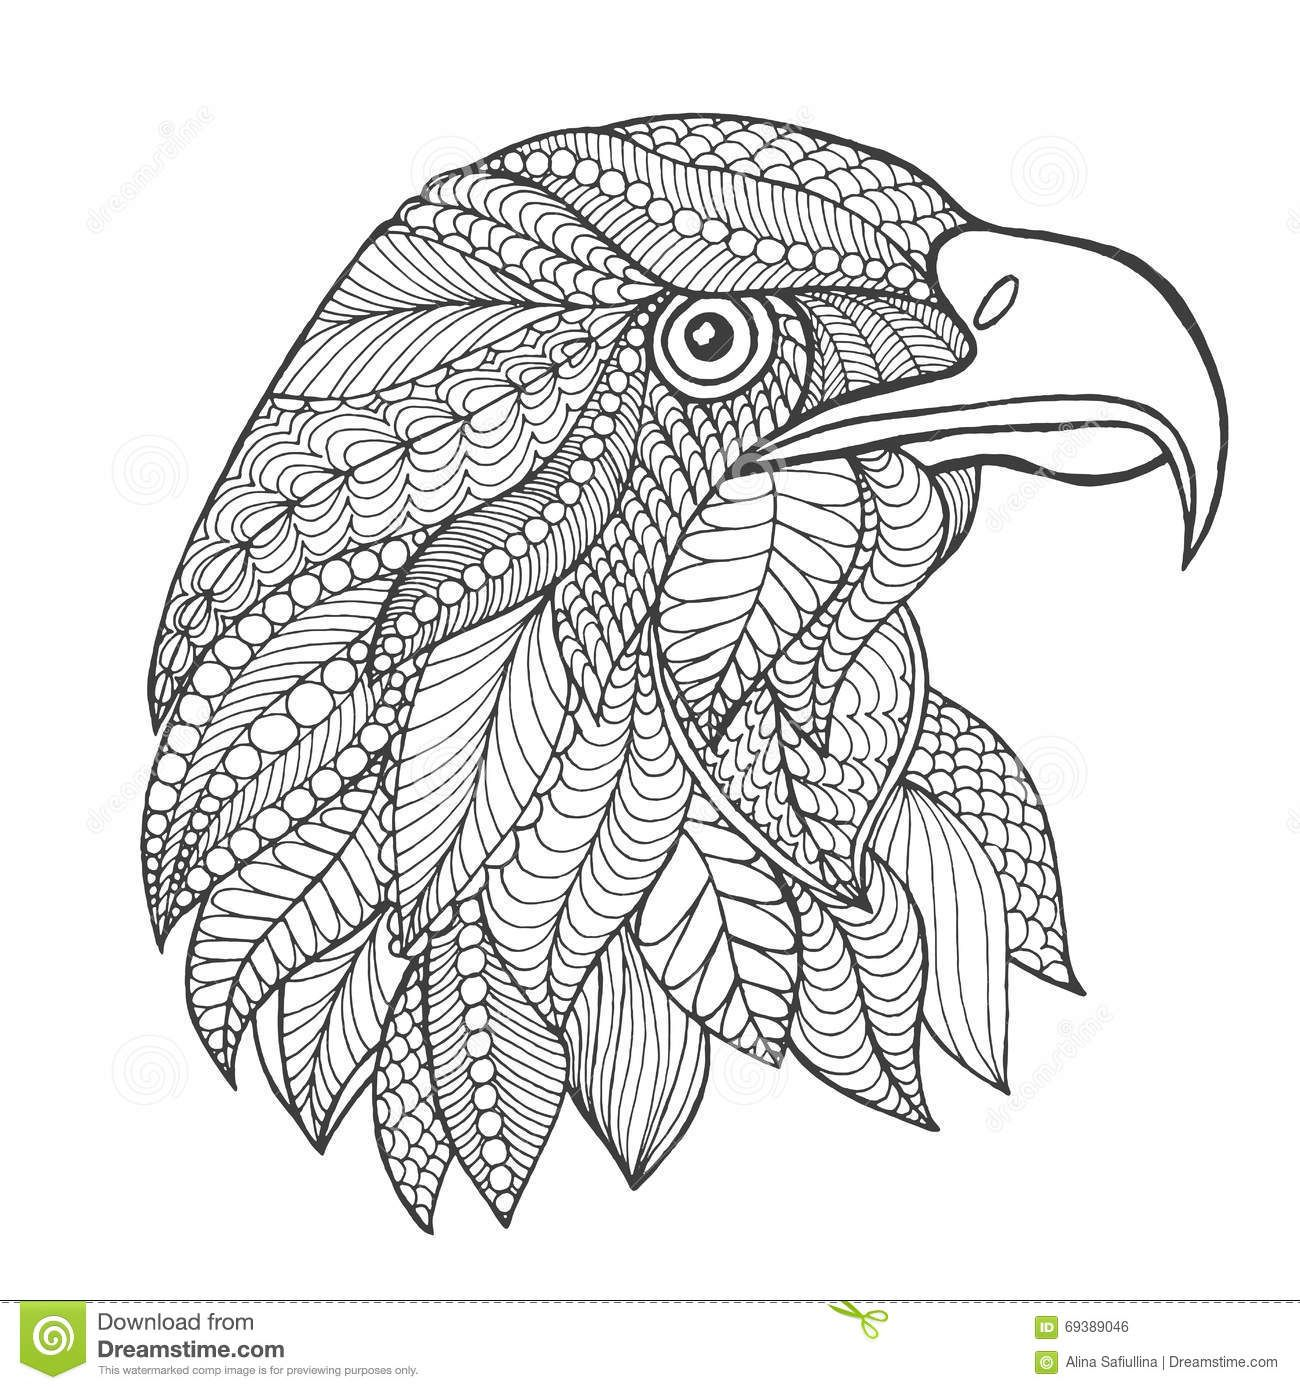 Indian Tribal Coloring Pages. zentqngle coloring pages  Google Search Silhouette Trace